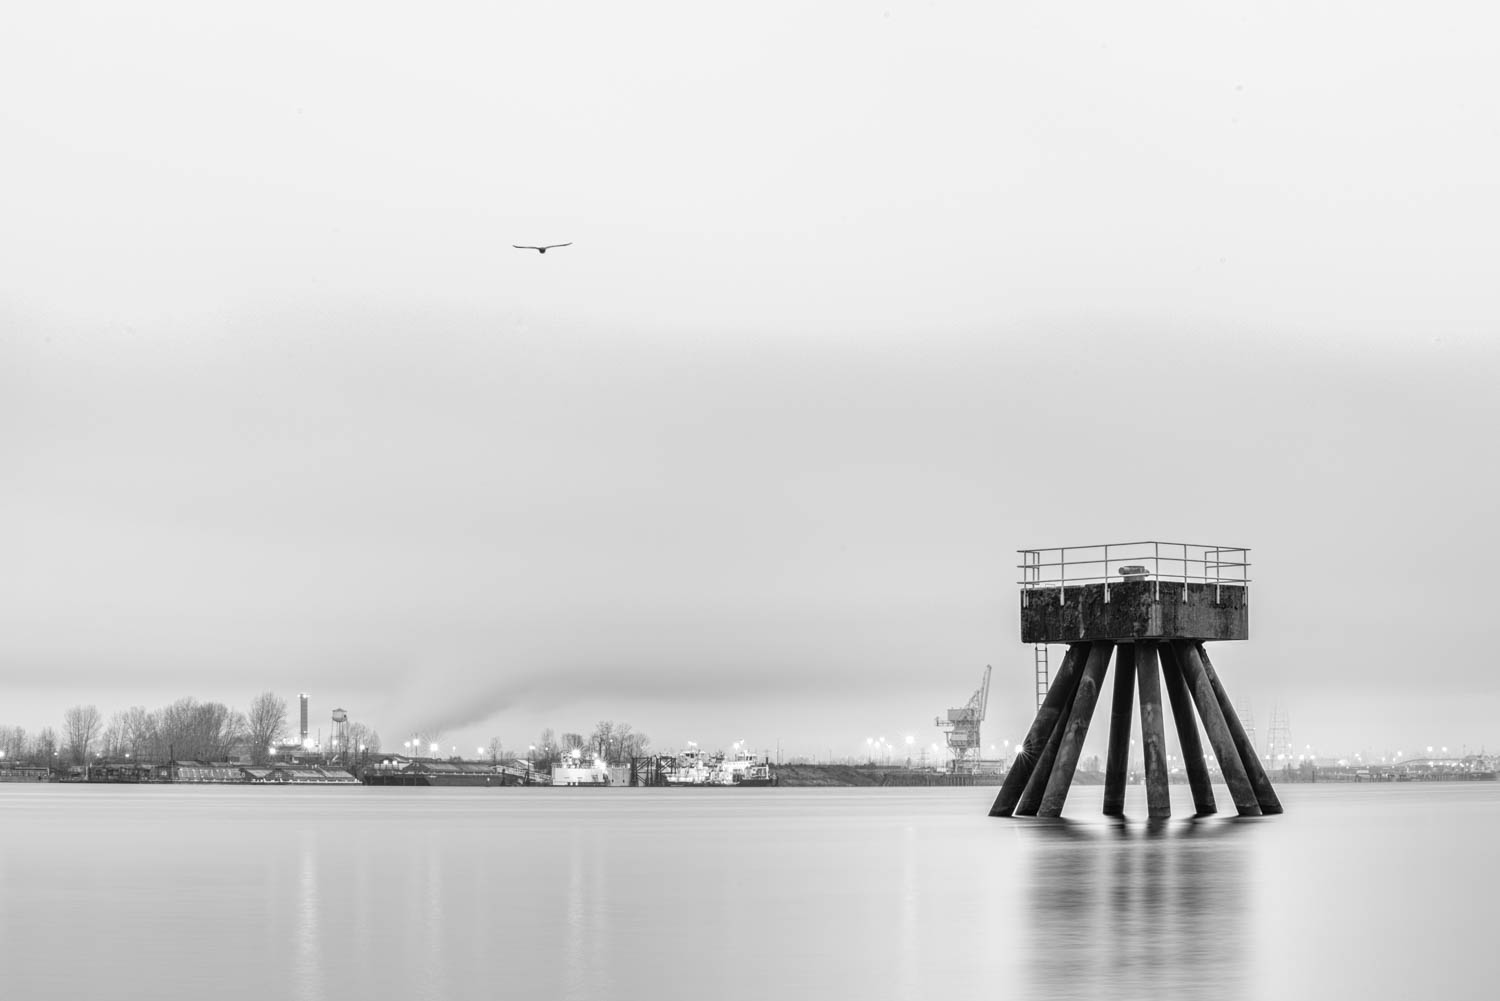 Watchtower Long Exposure with Bird-2.JPG